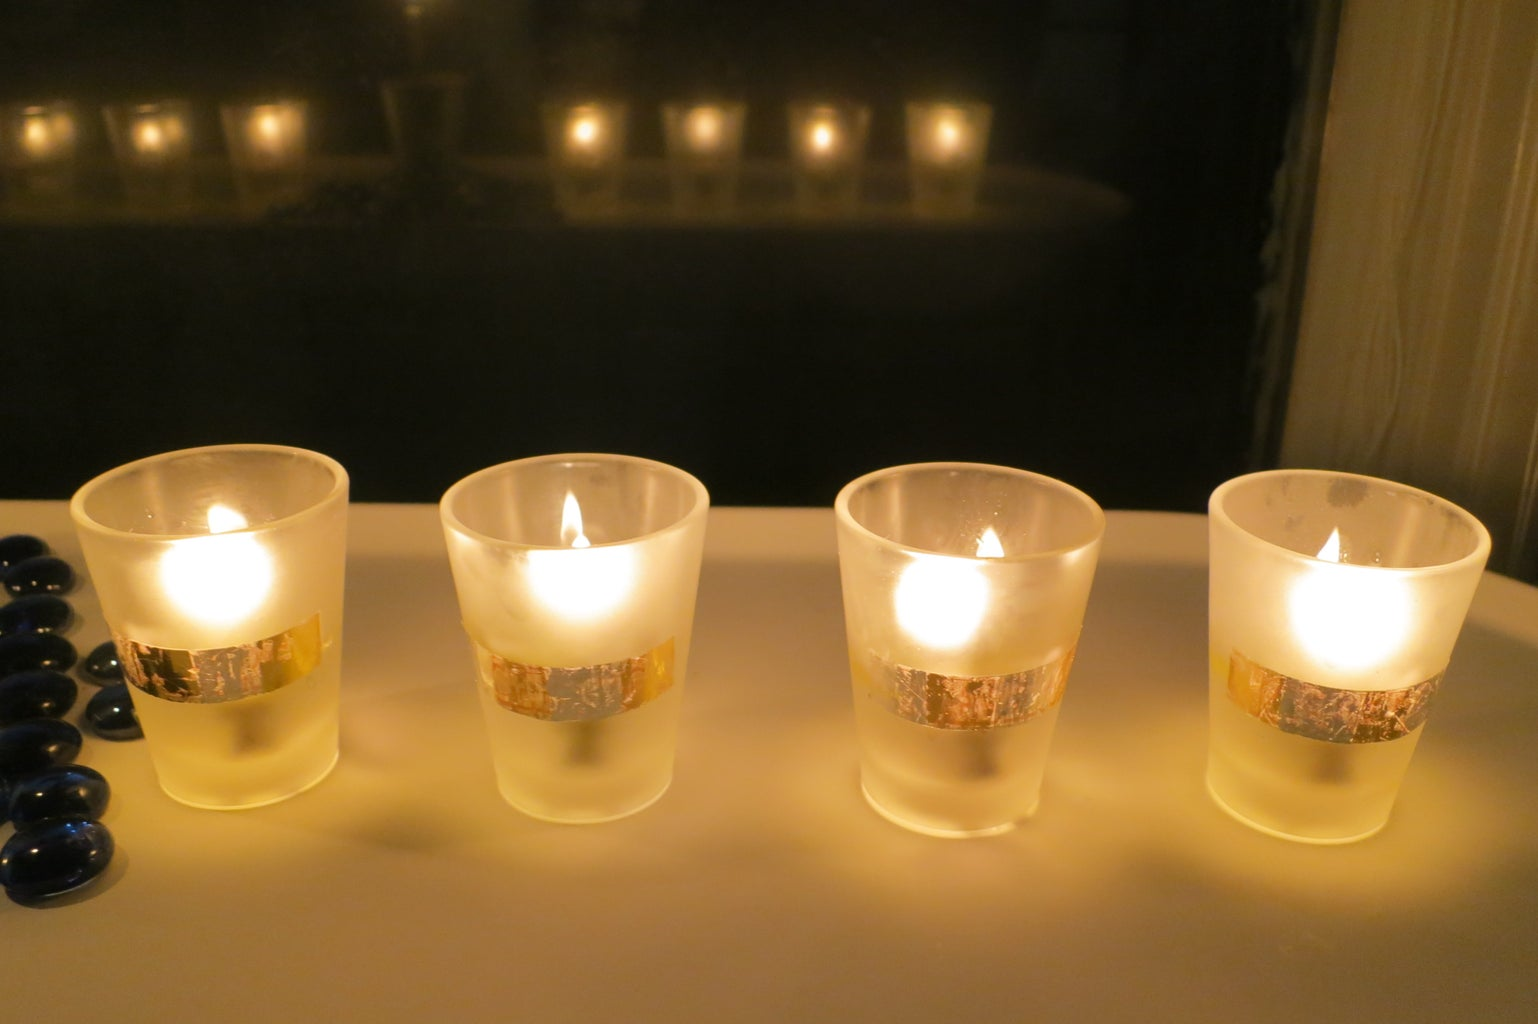 Upcycle Shot Glasses for an Oil Burning Candle